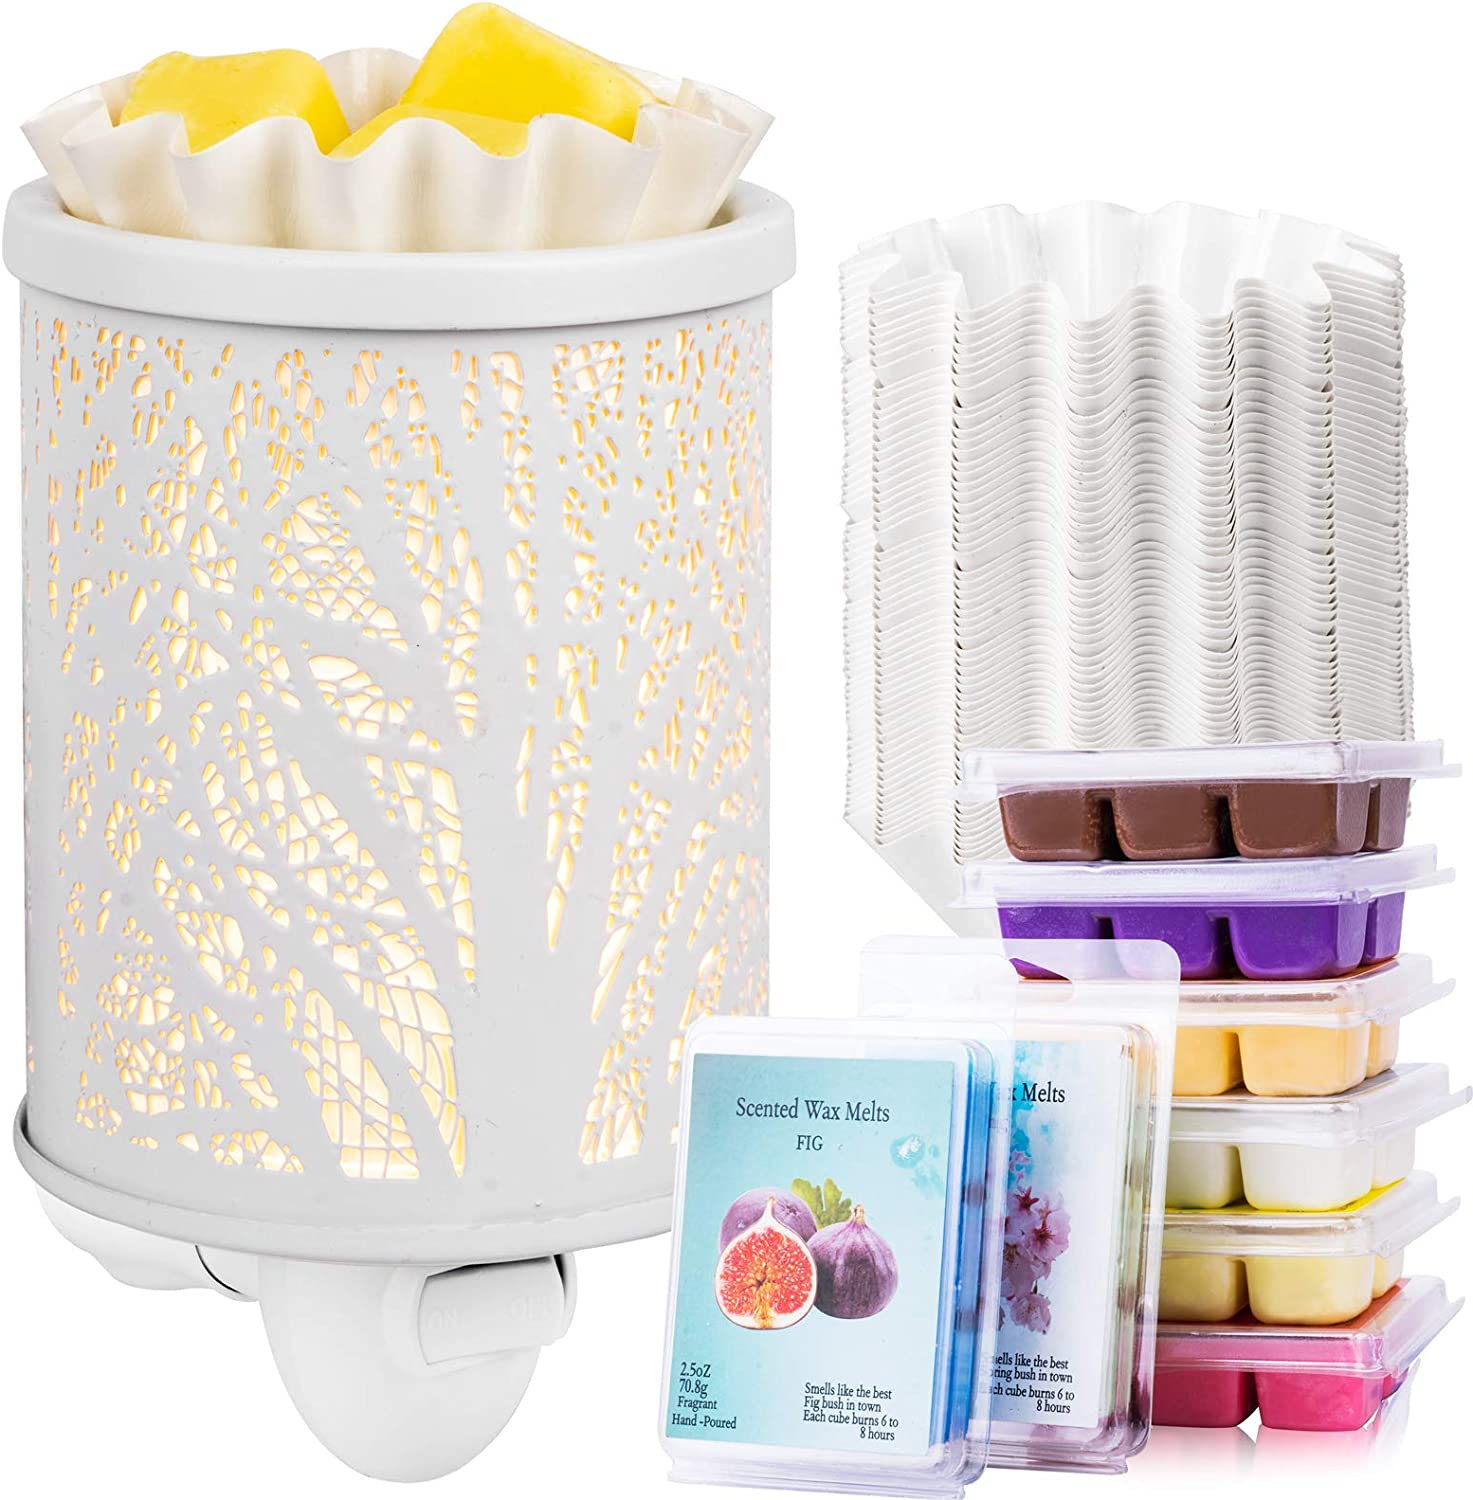 FANDOL Wax Melt Warmer Set Including Plug-in Wax Burner Fragrance Scented Wax Melts Wax Liners Wax Melter for Home Bedroom Kitchen Garage Gifts (White)